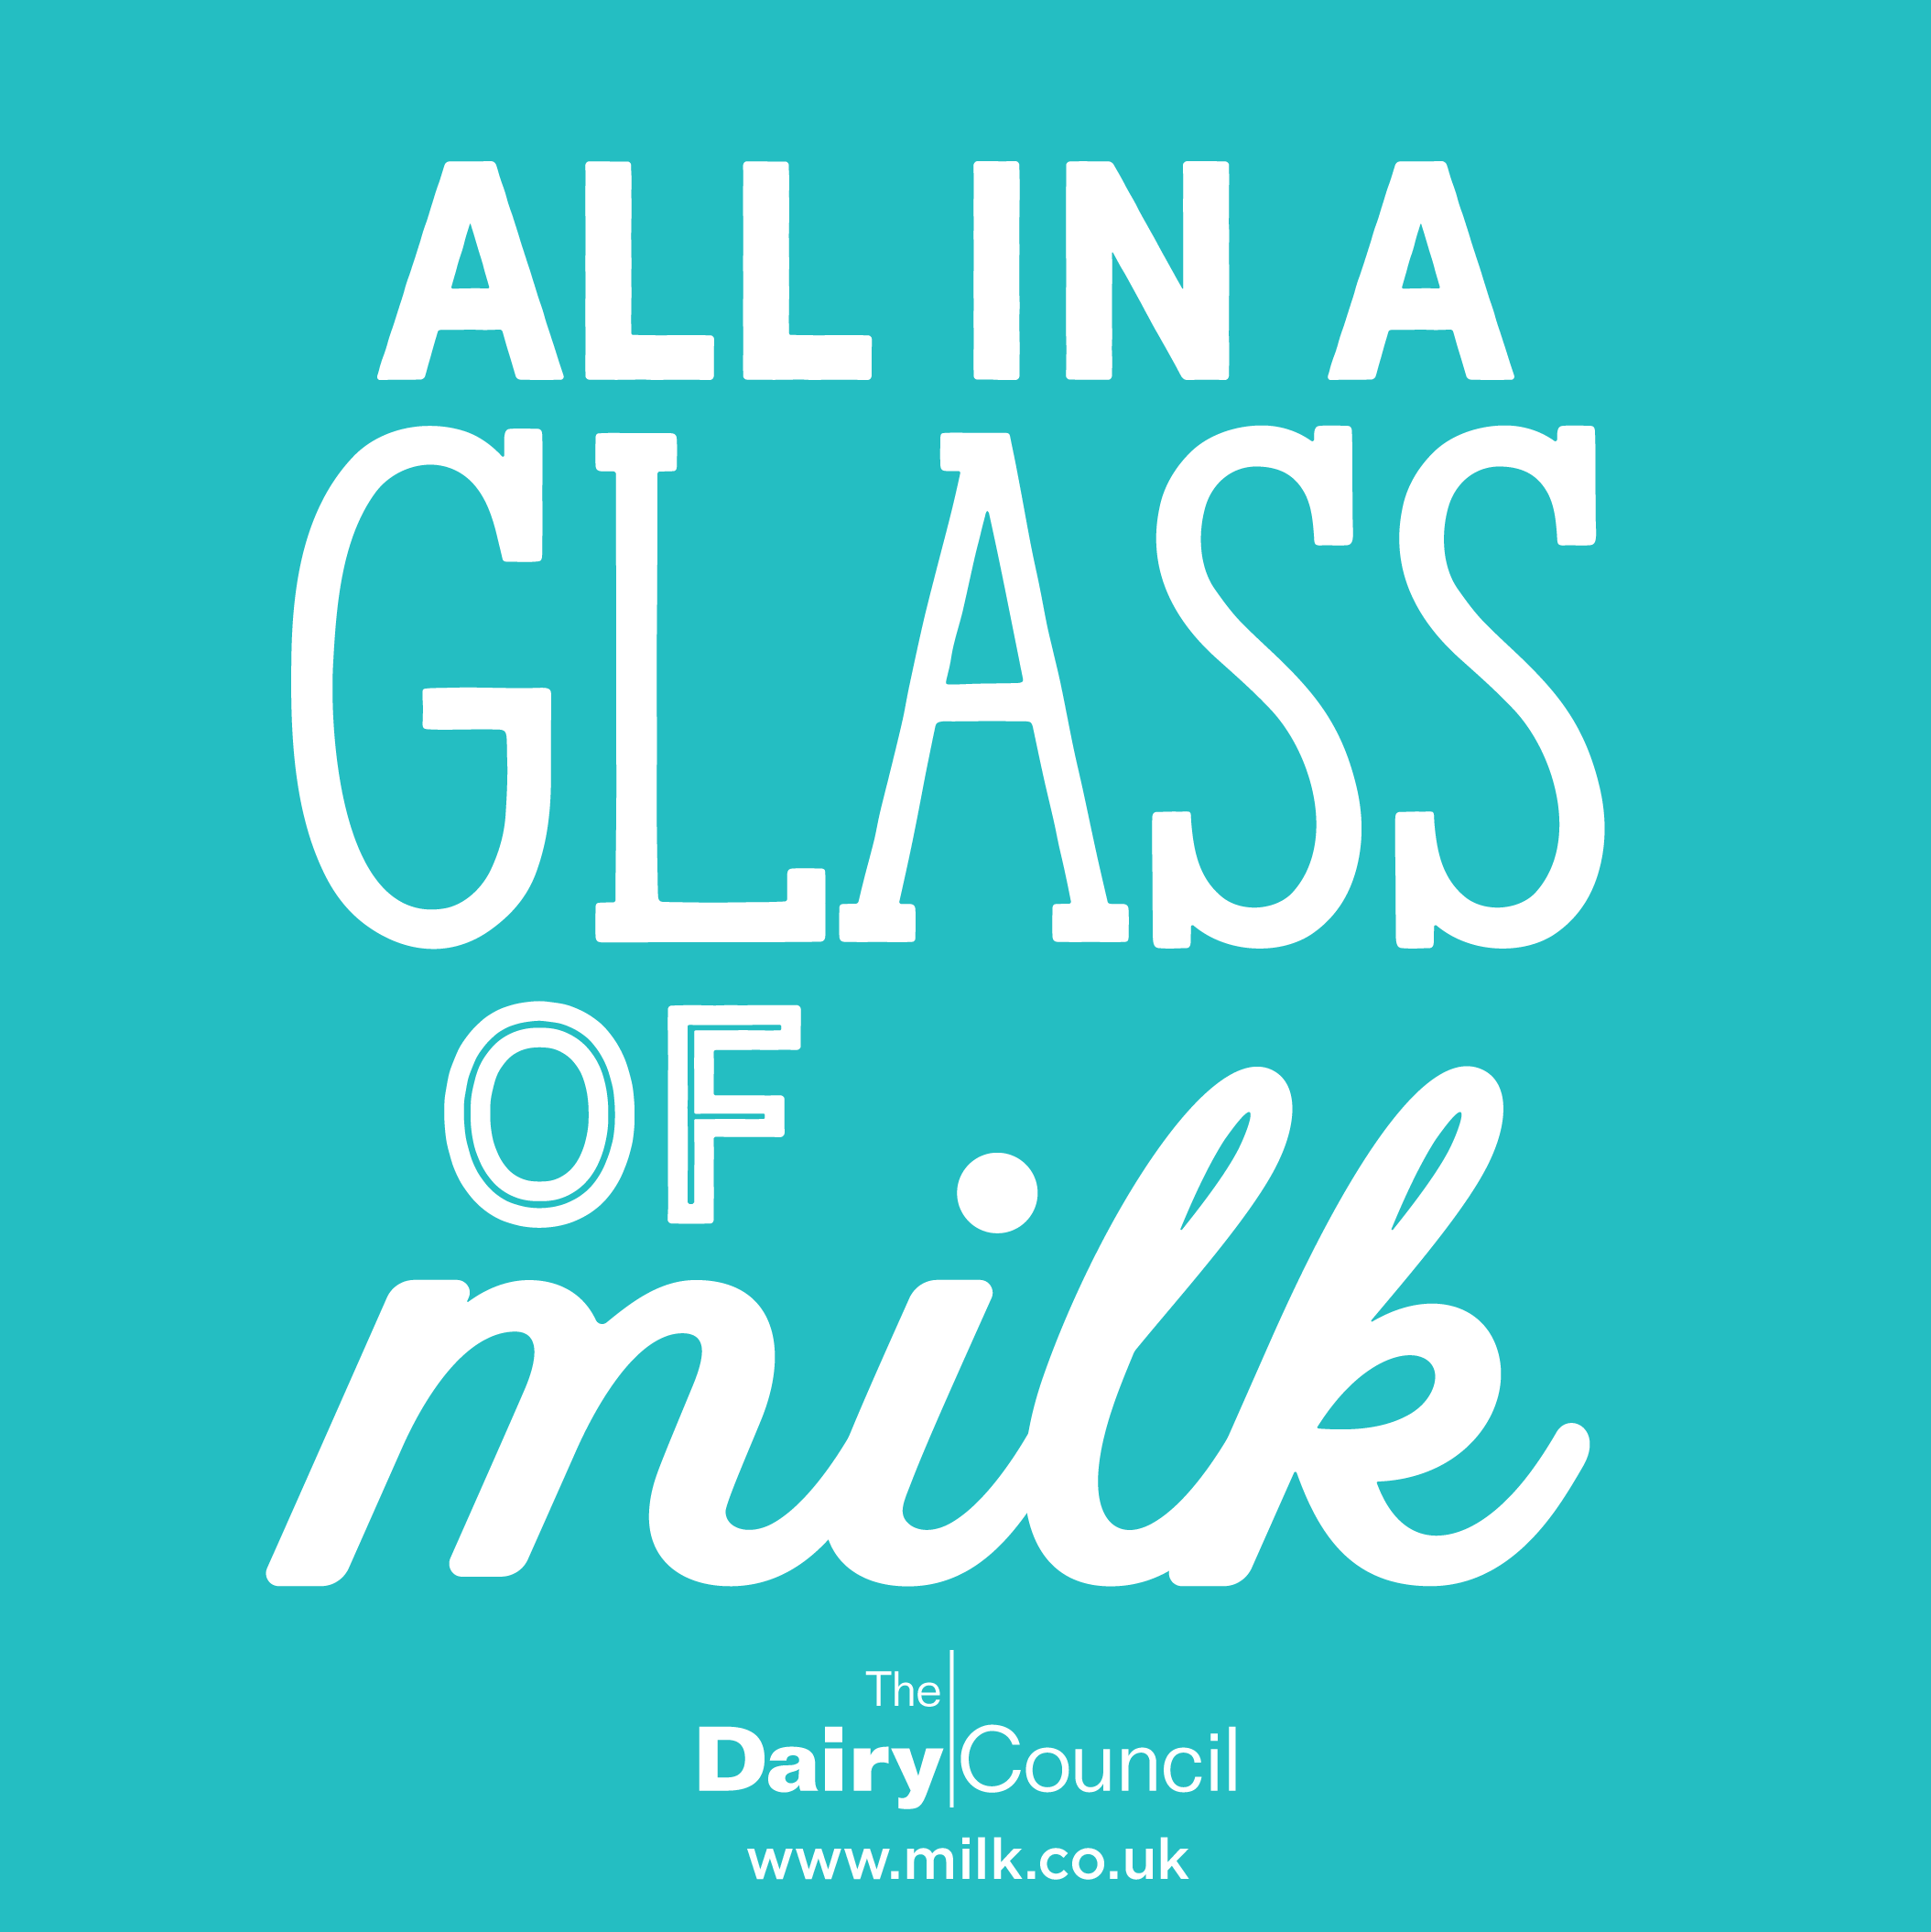 All in a glass of milk